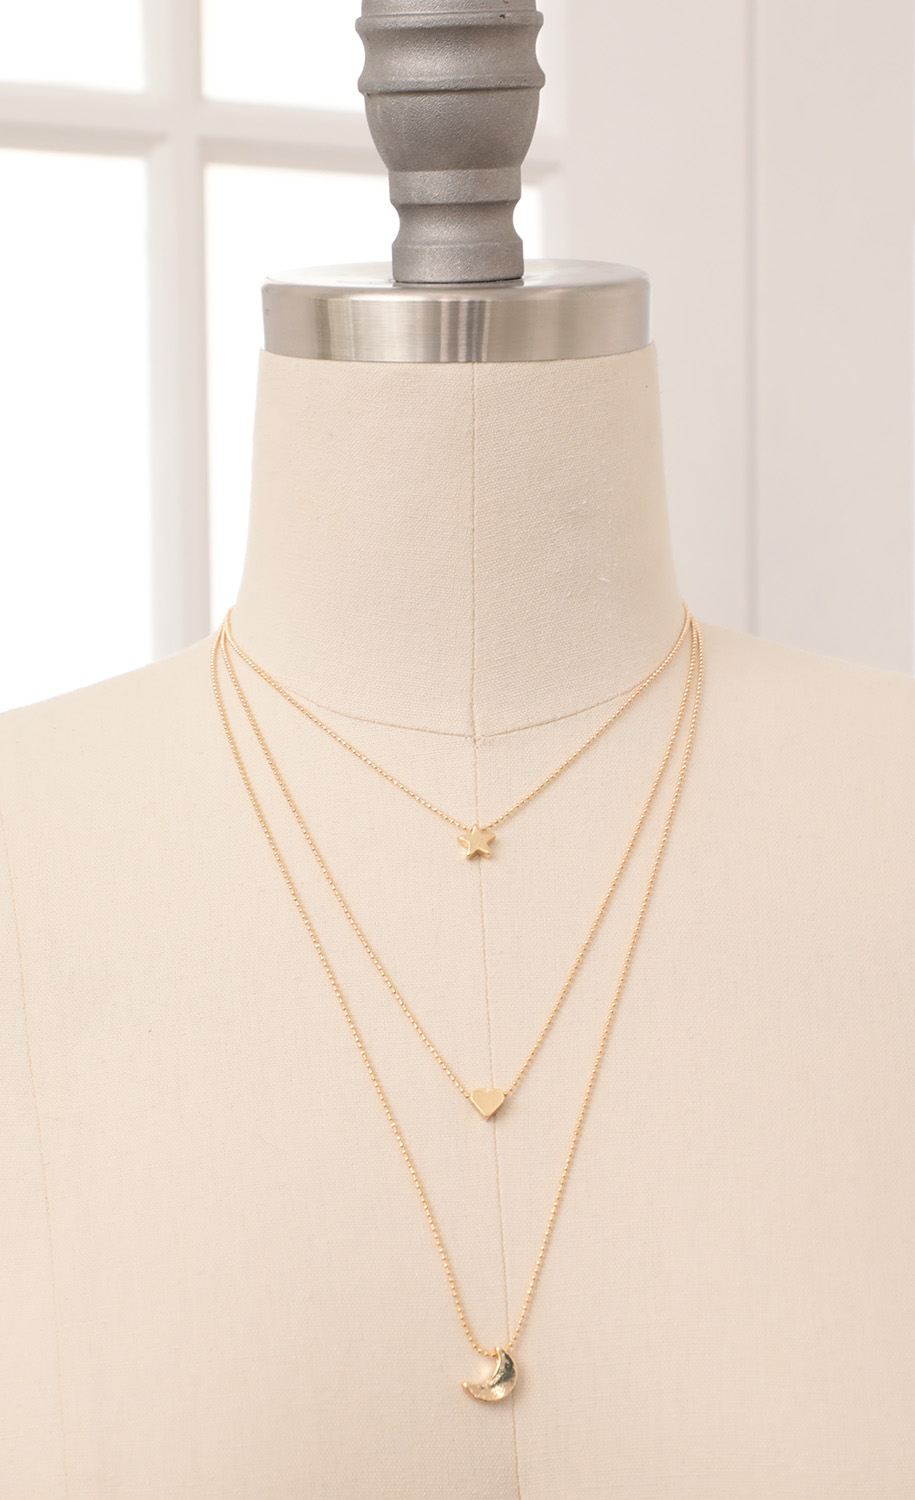 Daydreamer Layered Necklace in Gold